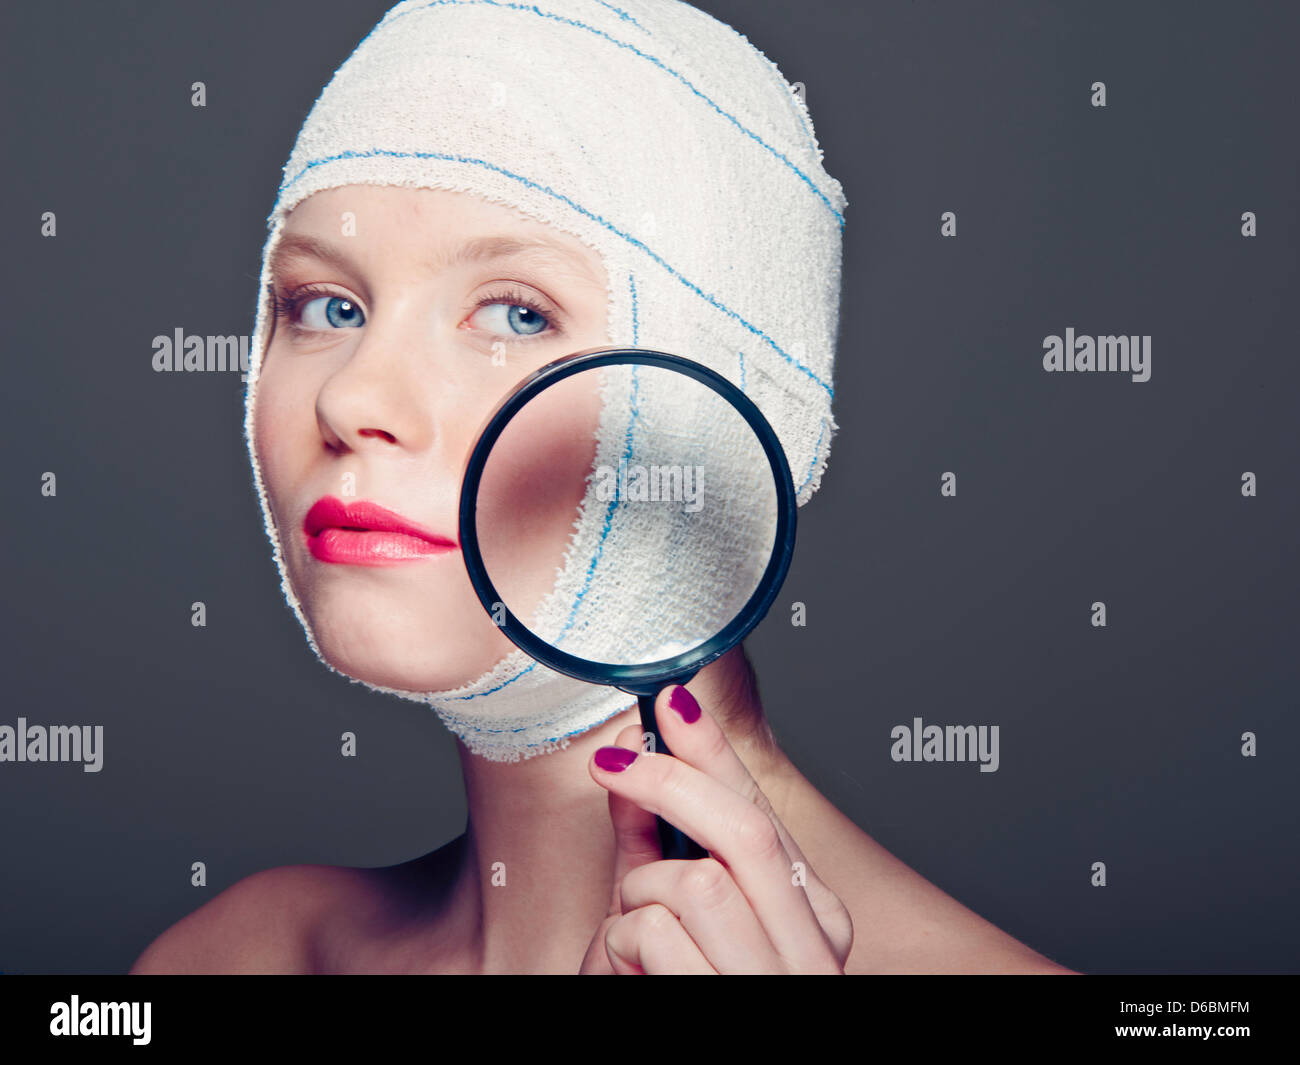 Woman in bandages with magnifying glass - Stock Image